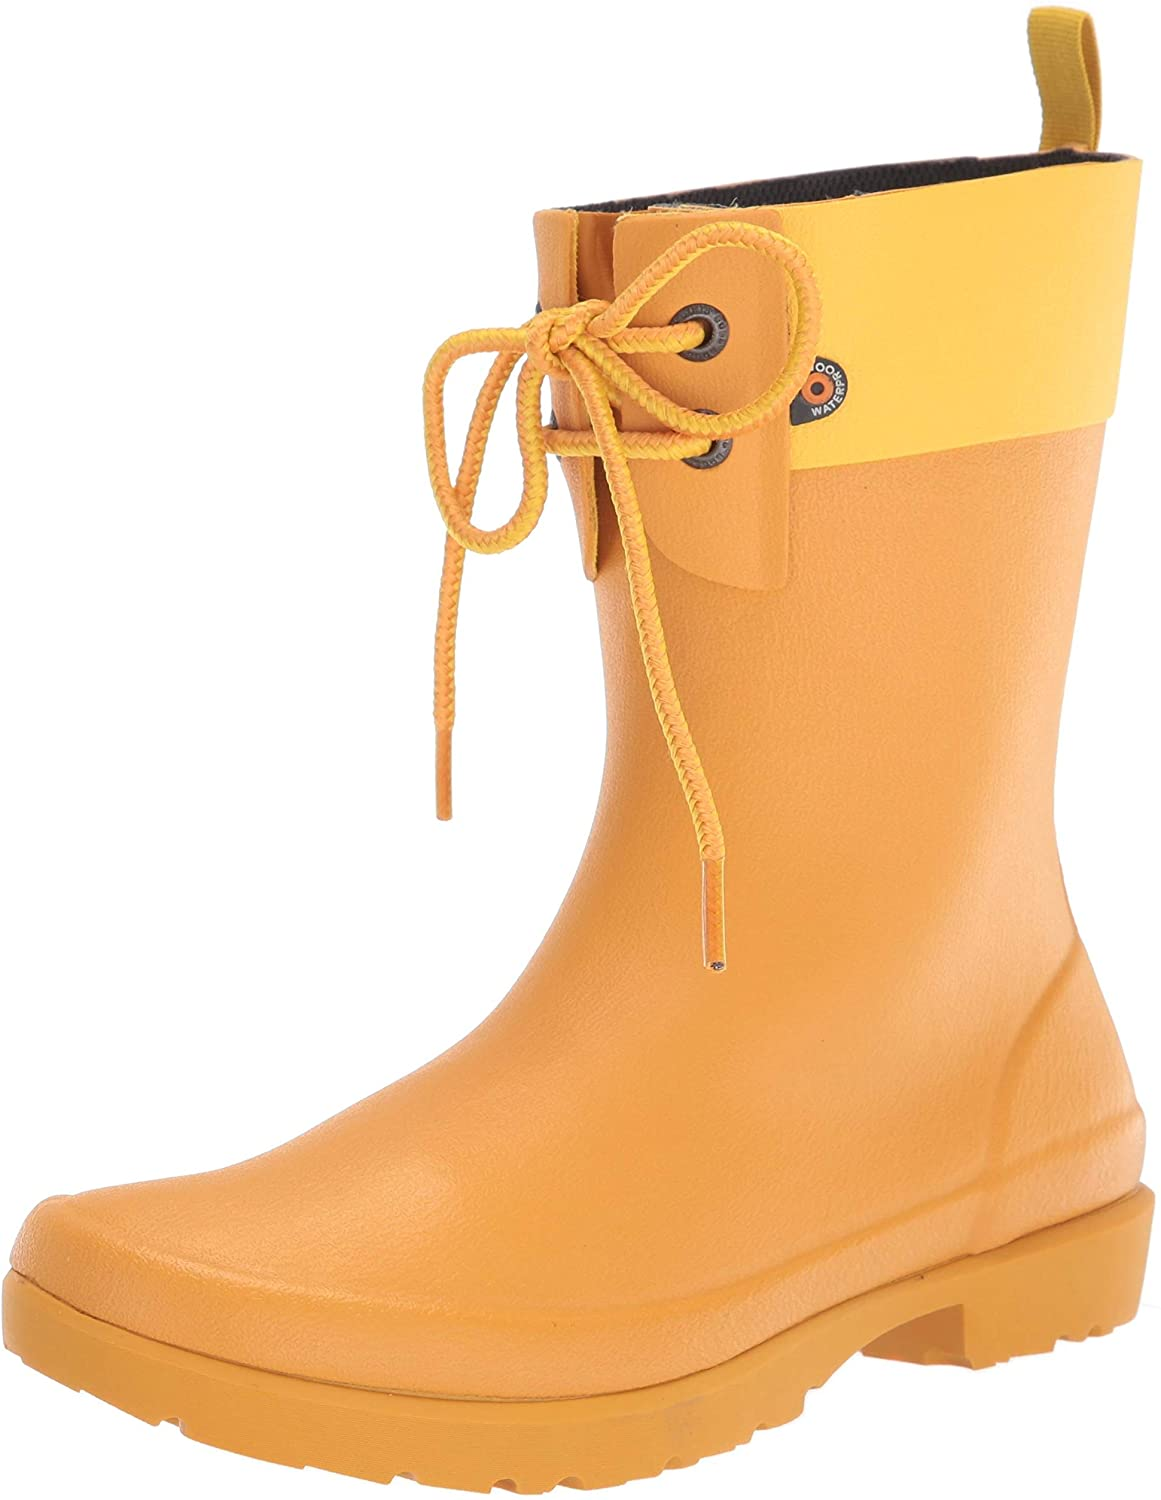 BOGS Women's Flora 2 Eye Waterproof Garden Rain Boot